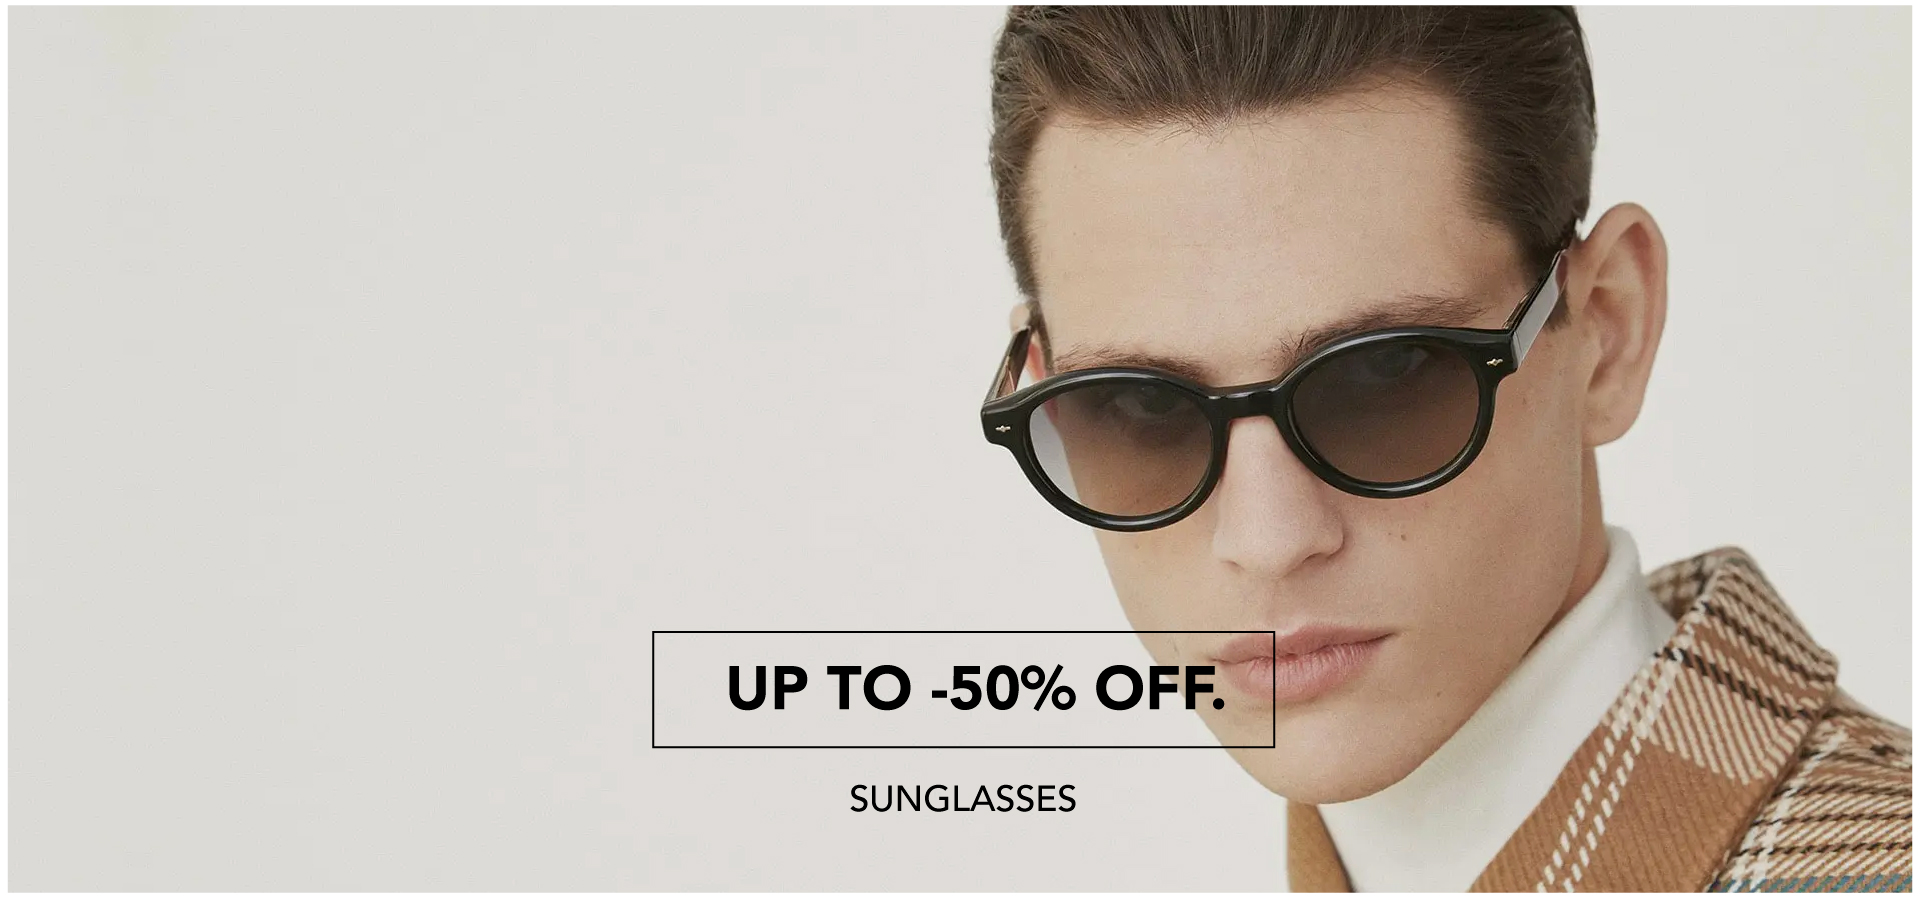 SUNGLASSES | UP TO 50% OFF